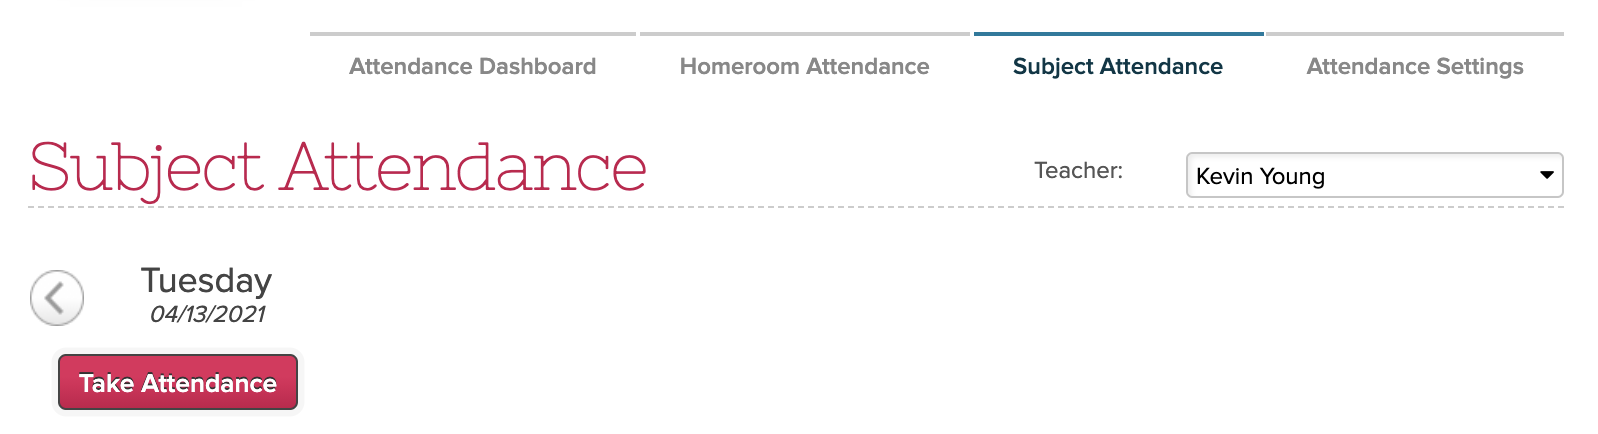 5-Take_Attendance.png